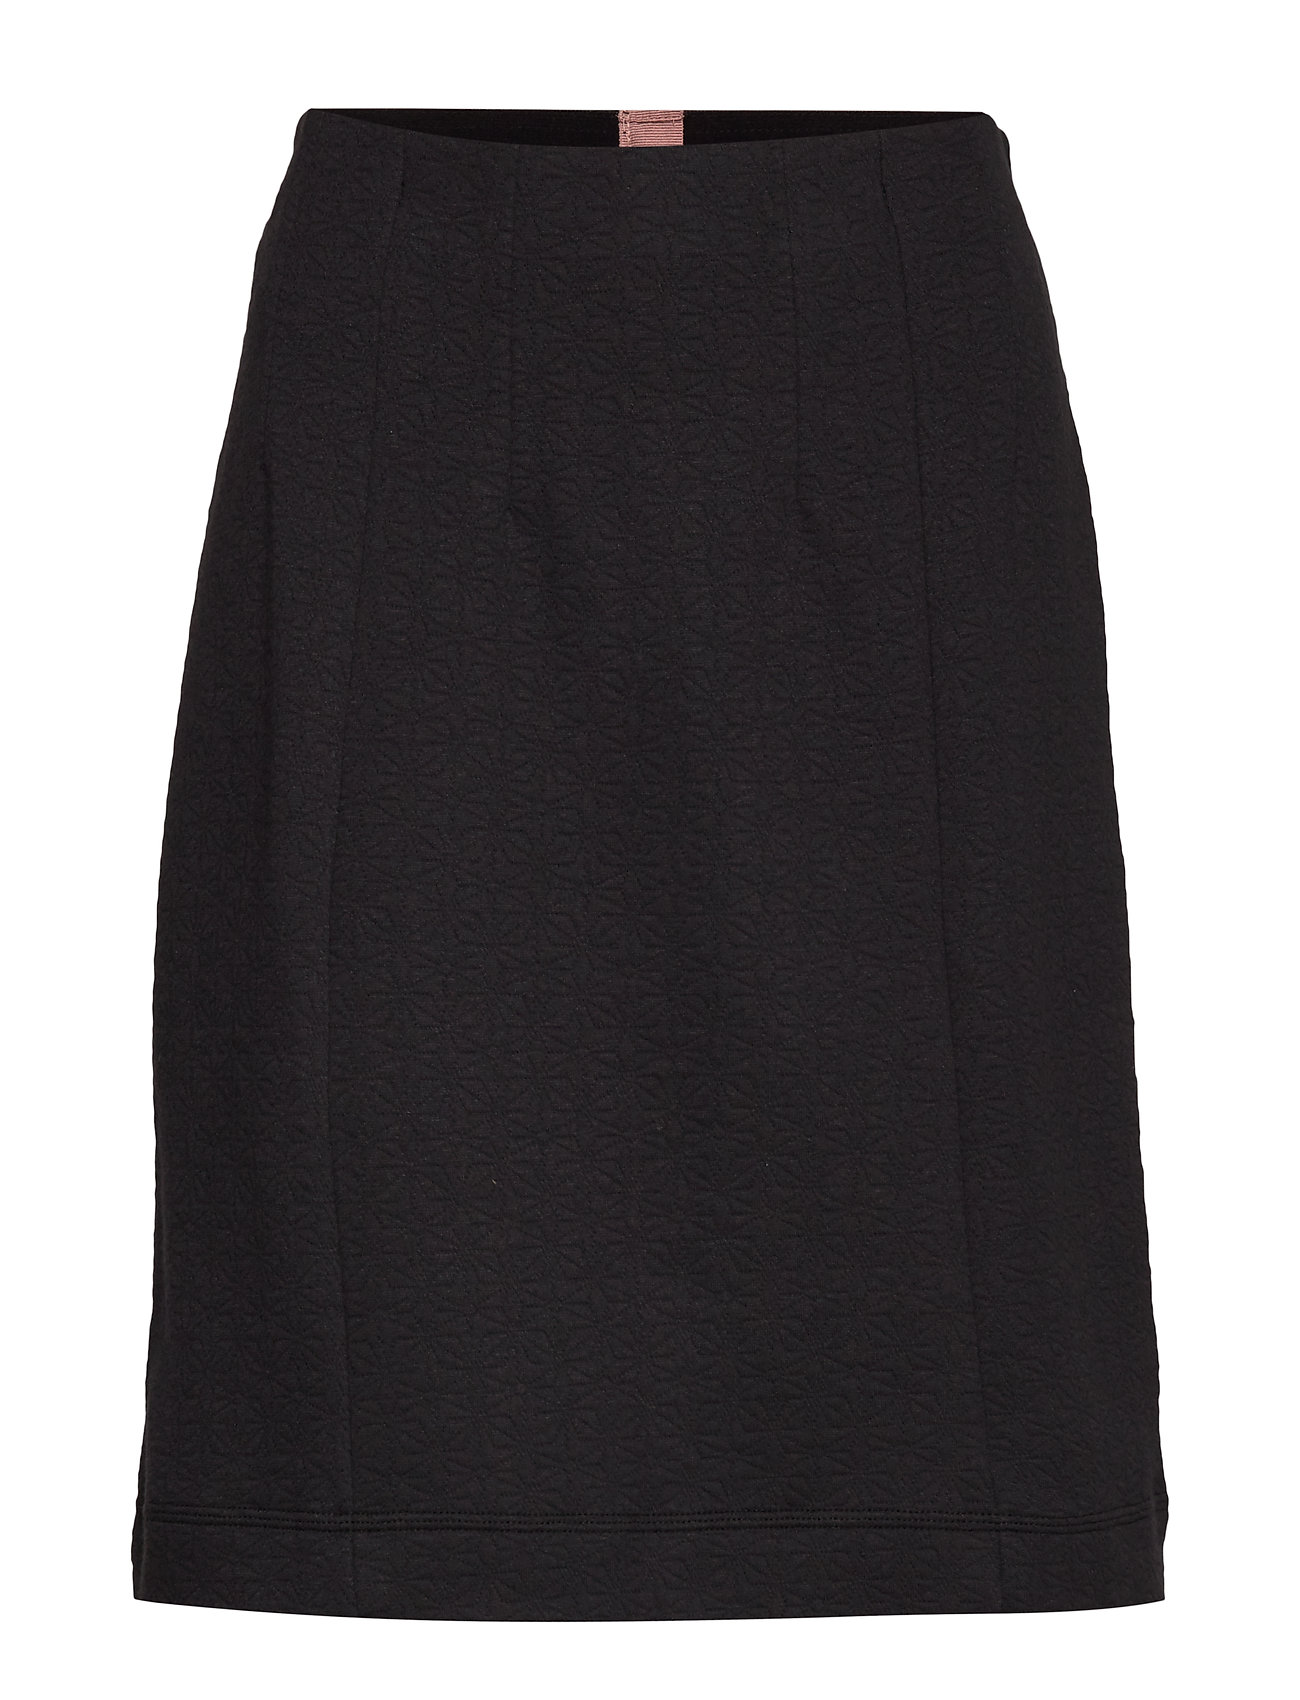 Noa Noa Skirt - BLACK